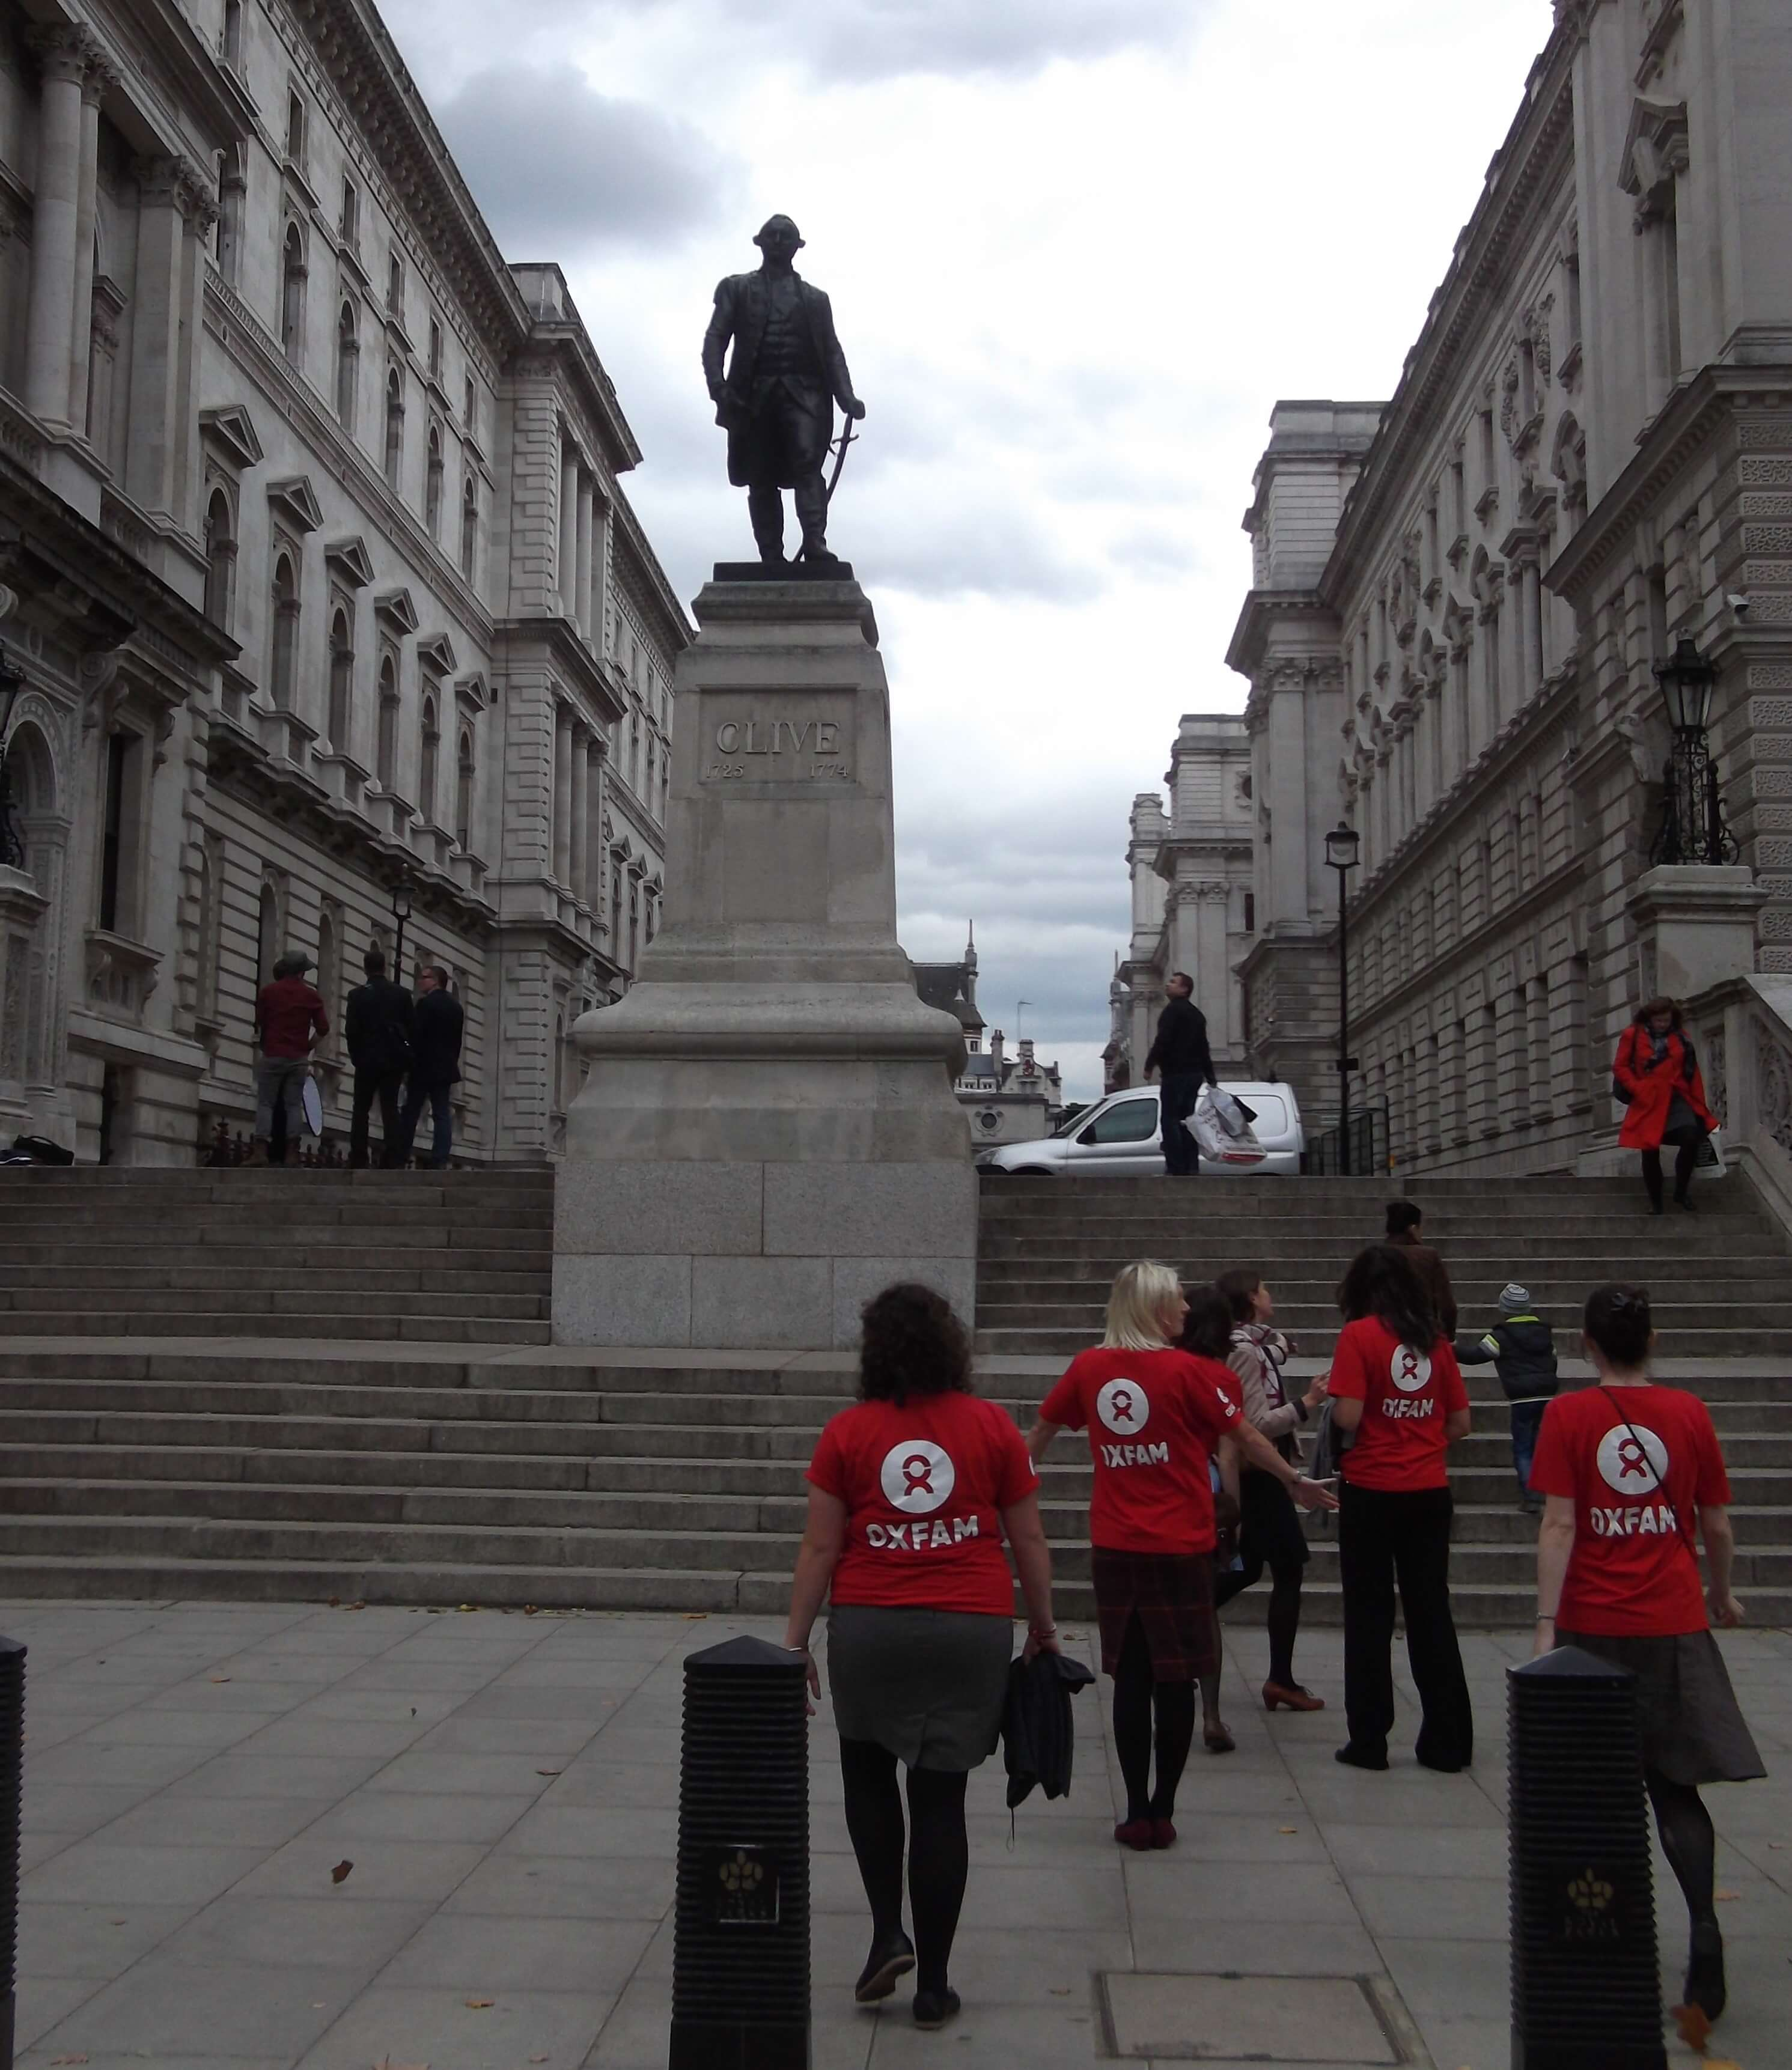 Entrance to Whitehall - Treasury (Right) & Foreign Office (Left)